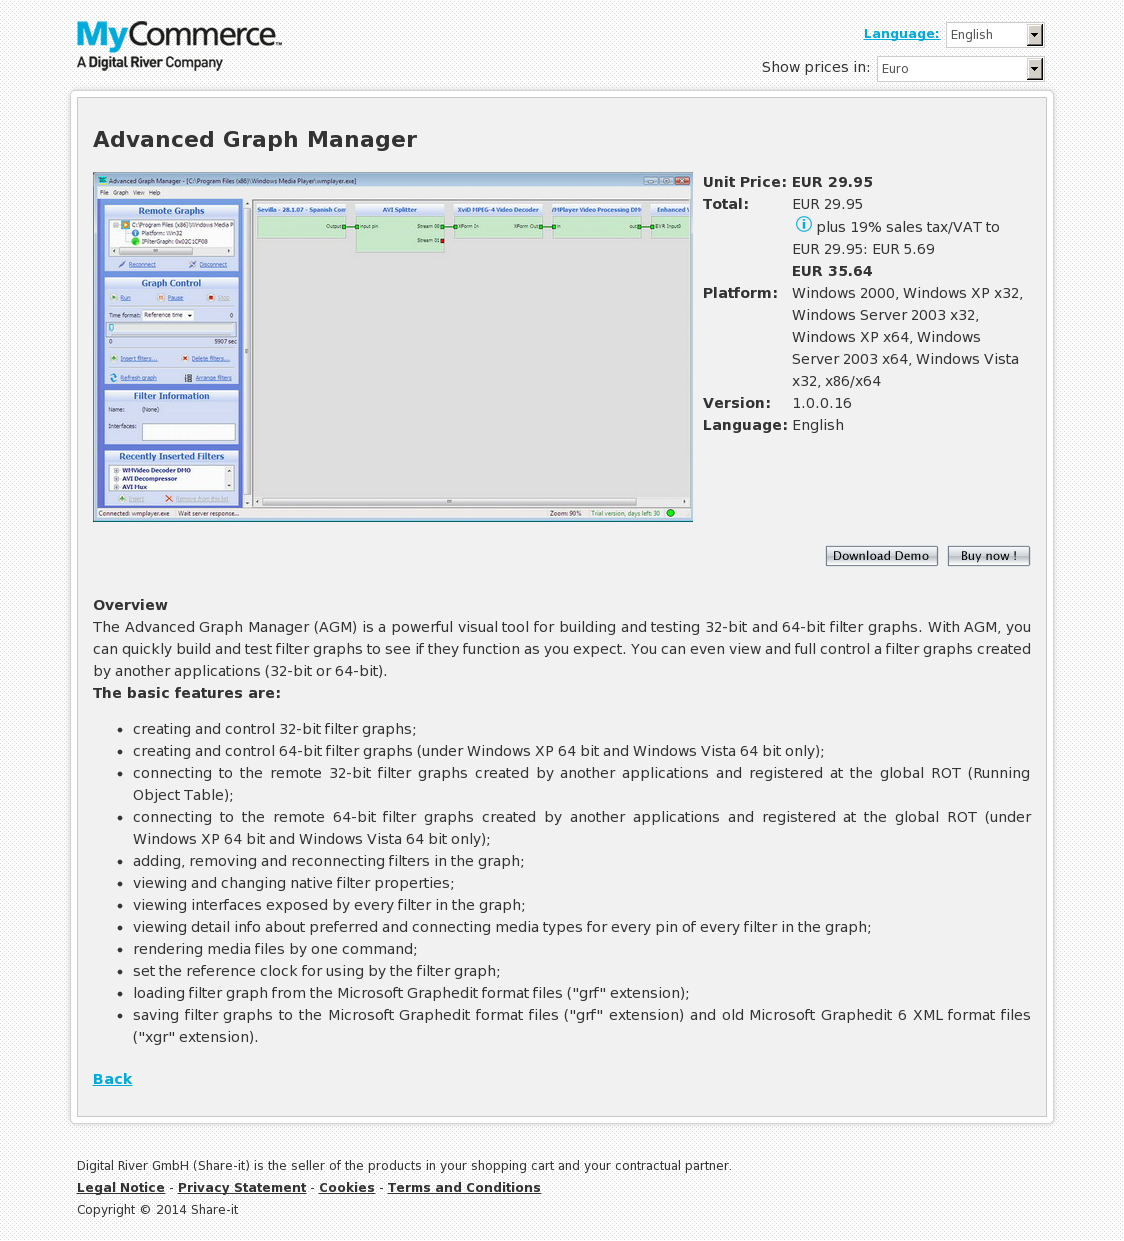 Advanced Graph Manager